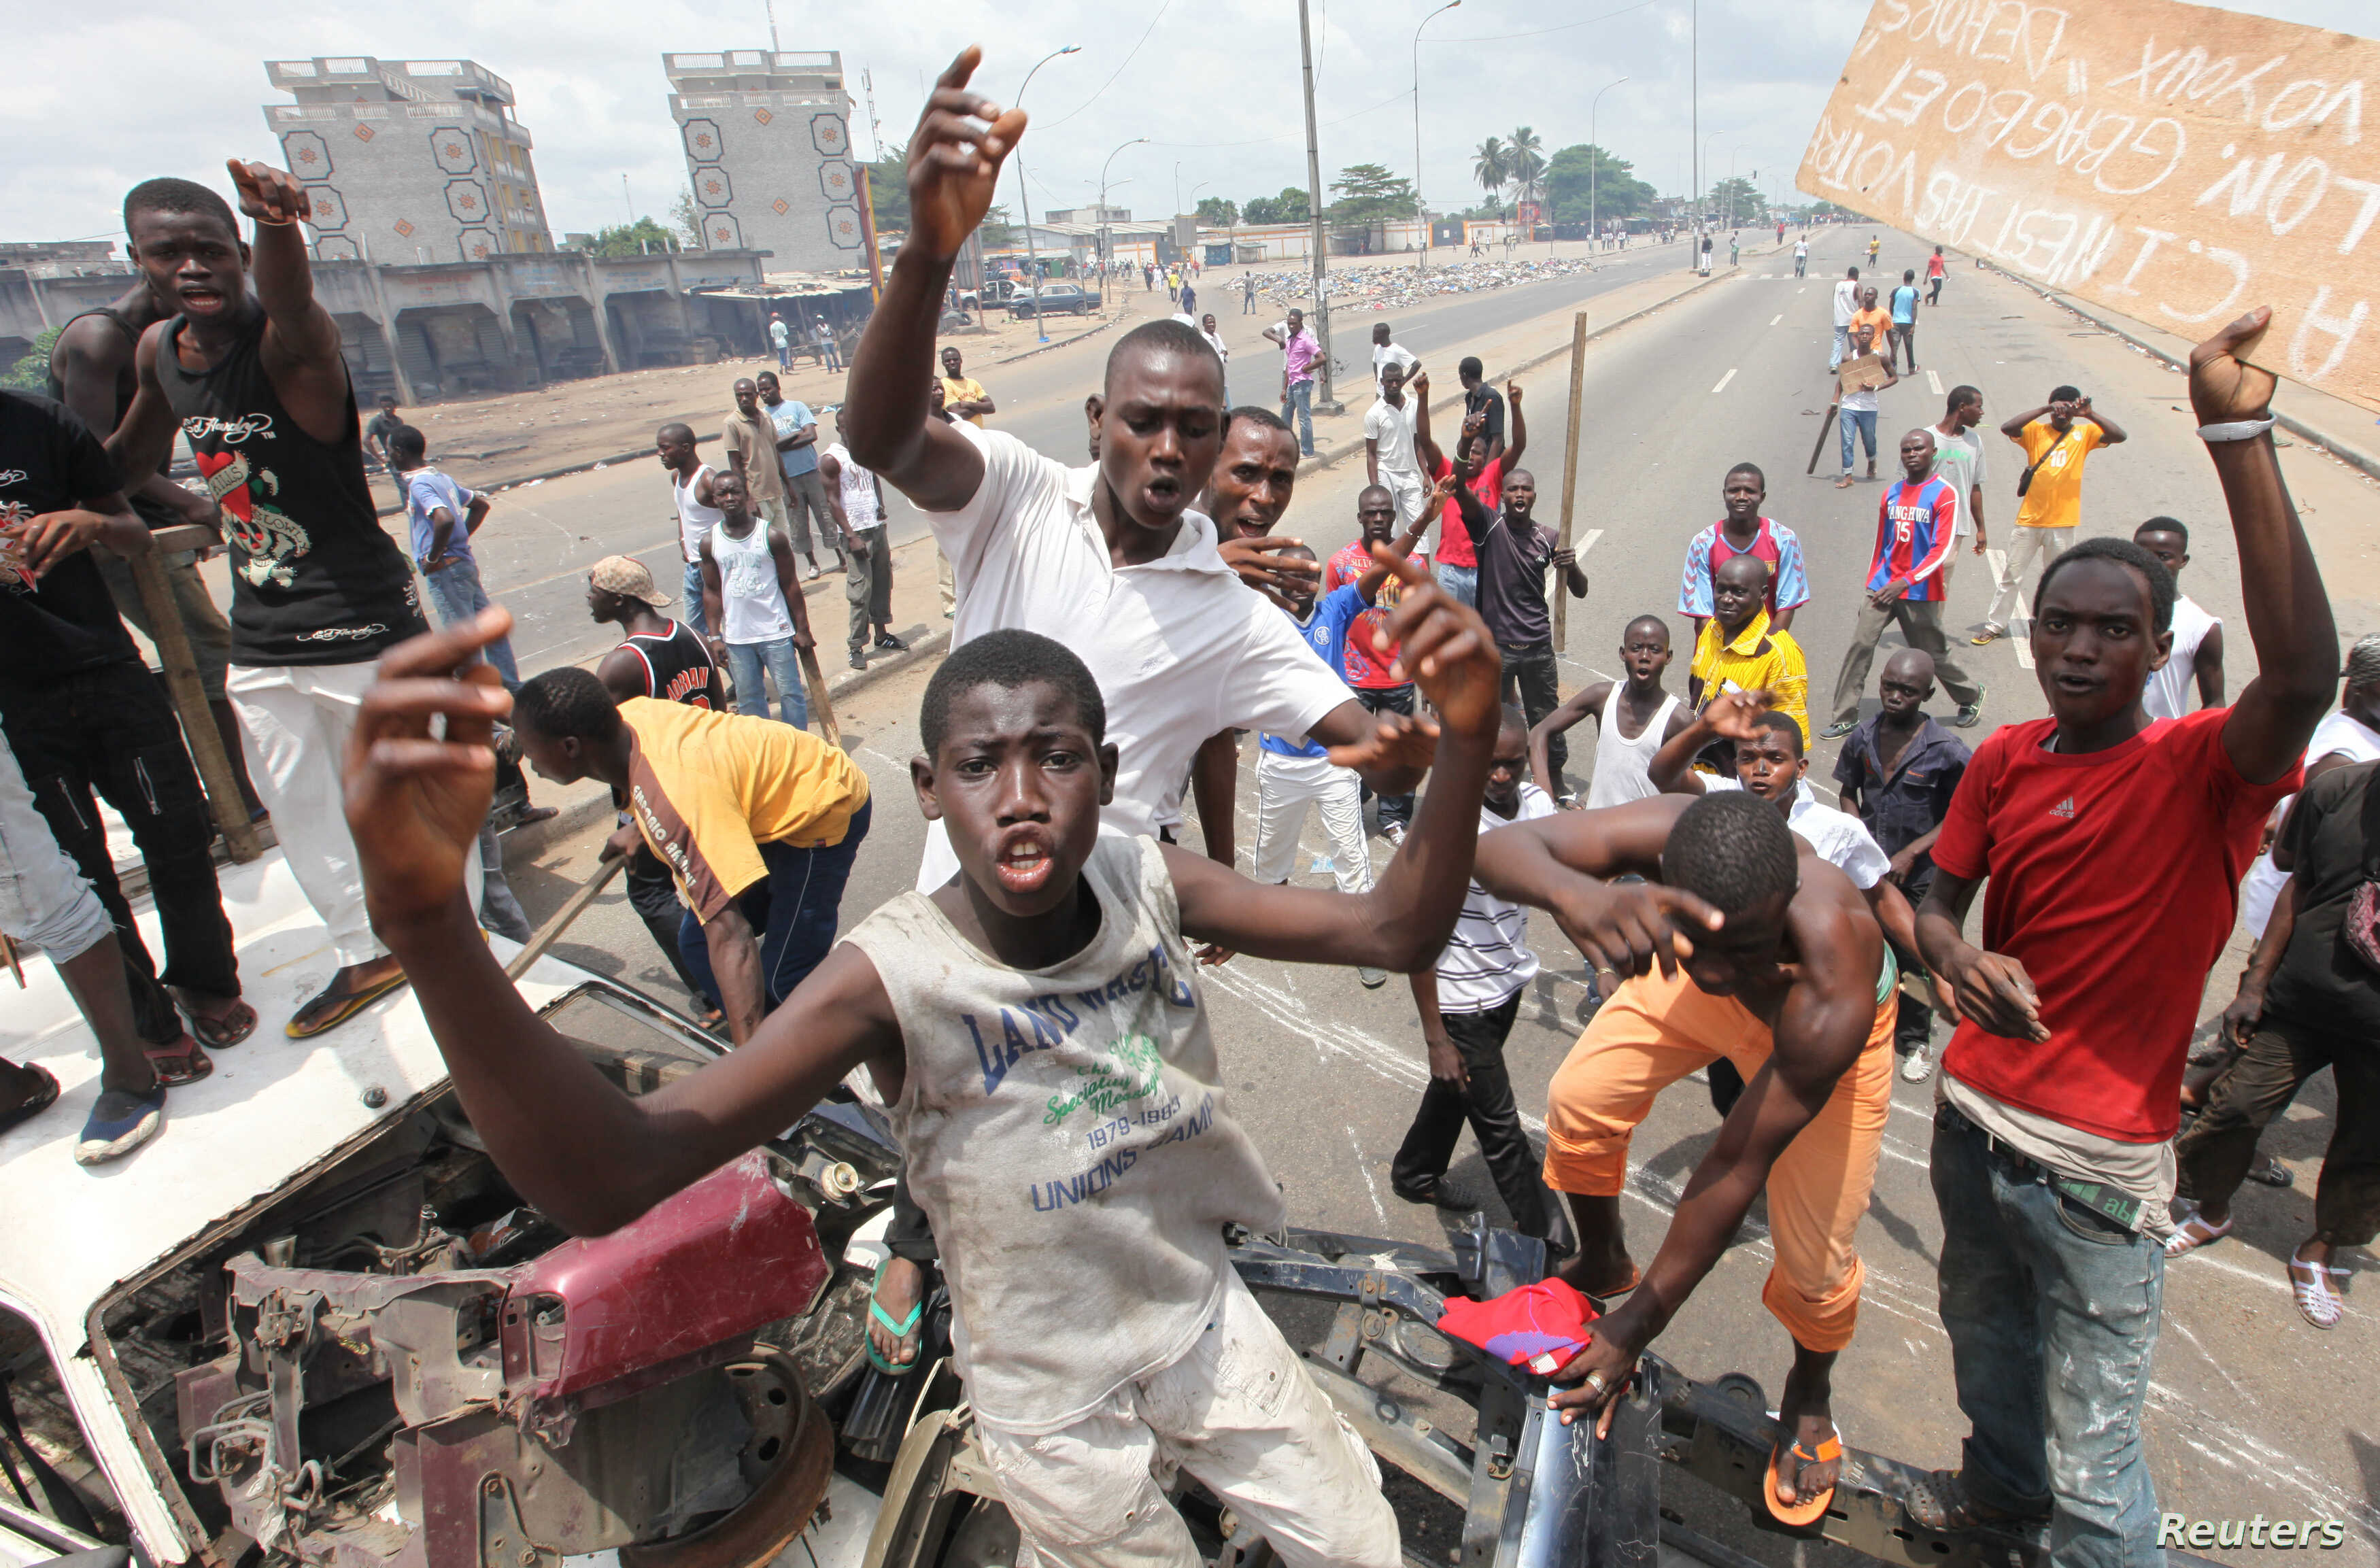 Anti-Gbagbo protesters stand near a roadblock and burning tires in the Abobo area of Abidjan, Ivory Coast, March 3, 2011.